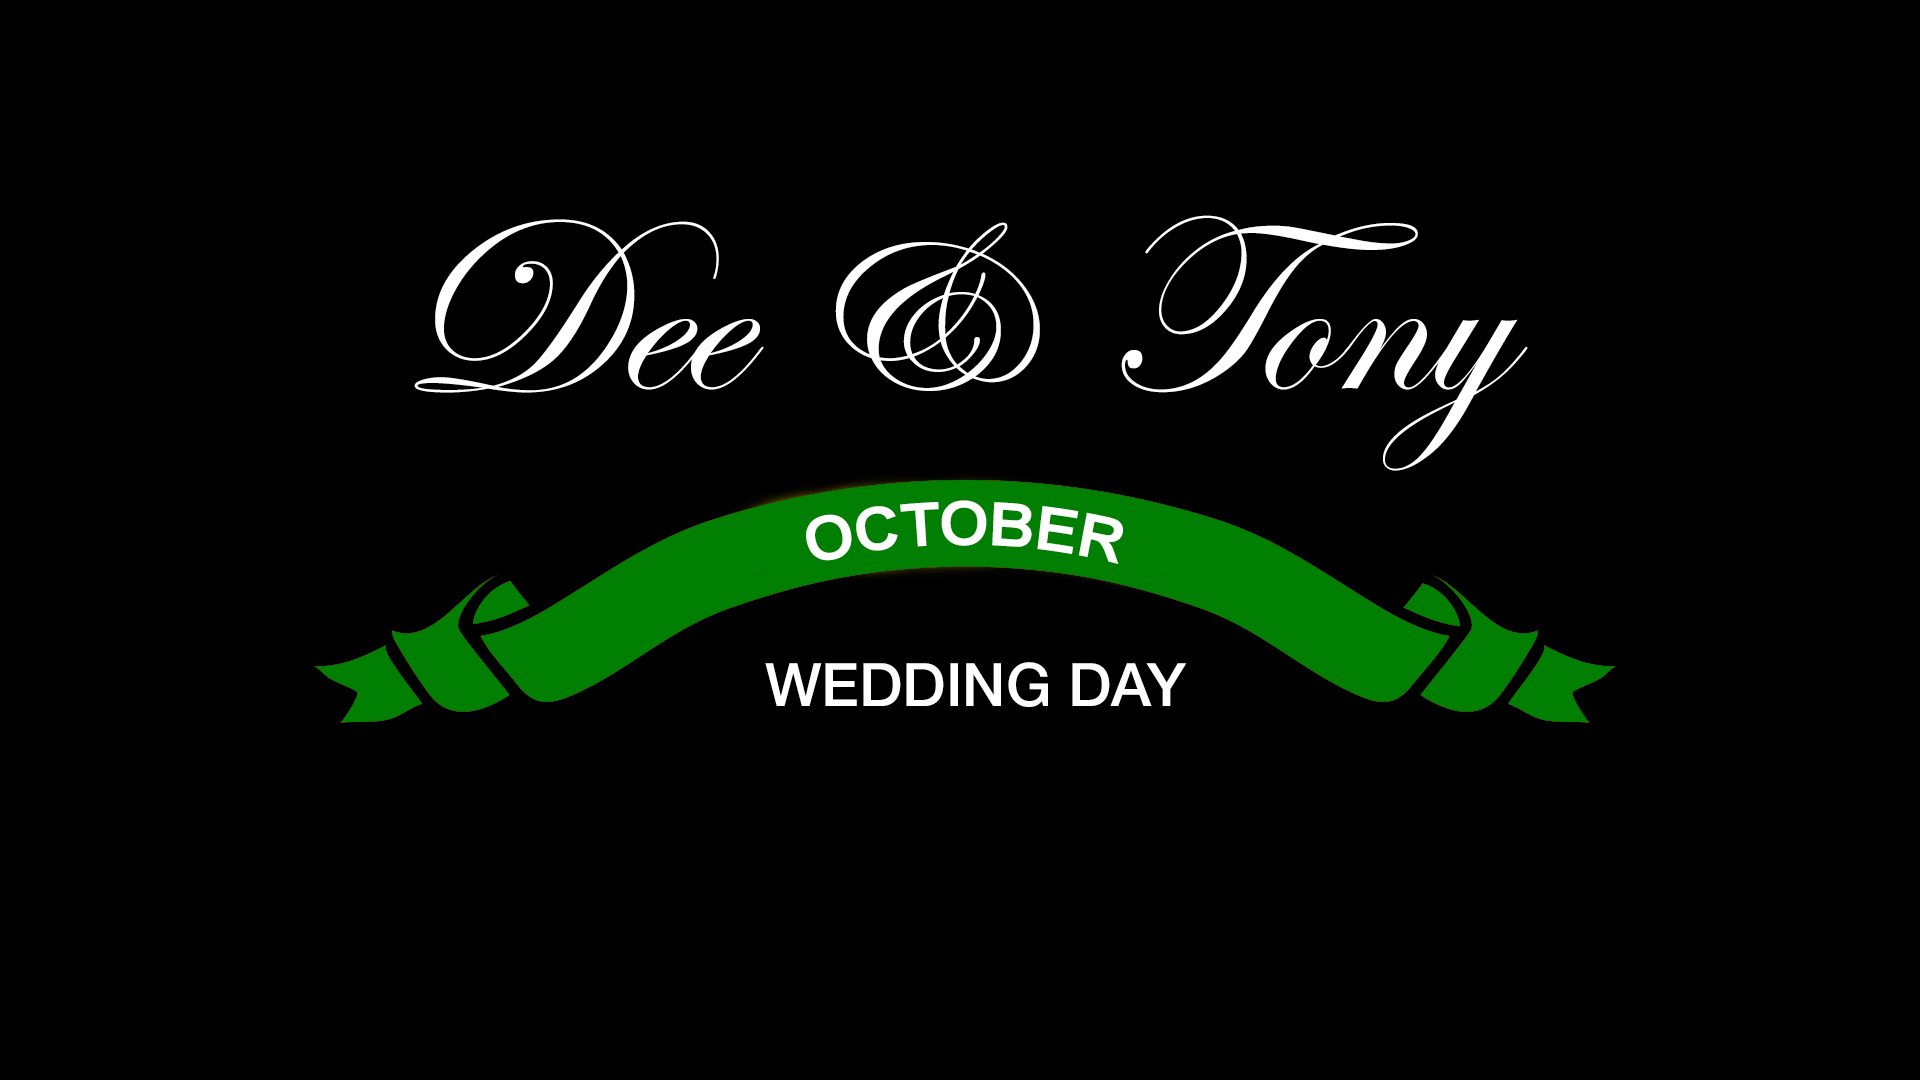 Tony and Dee Wedding